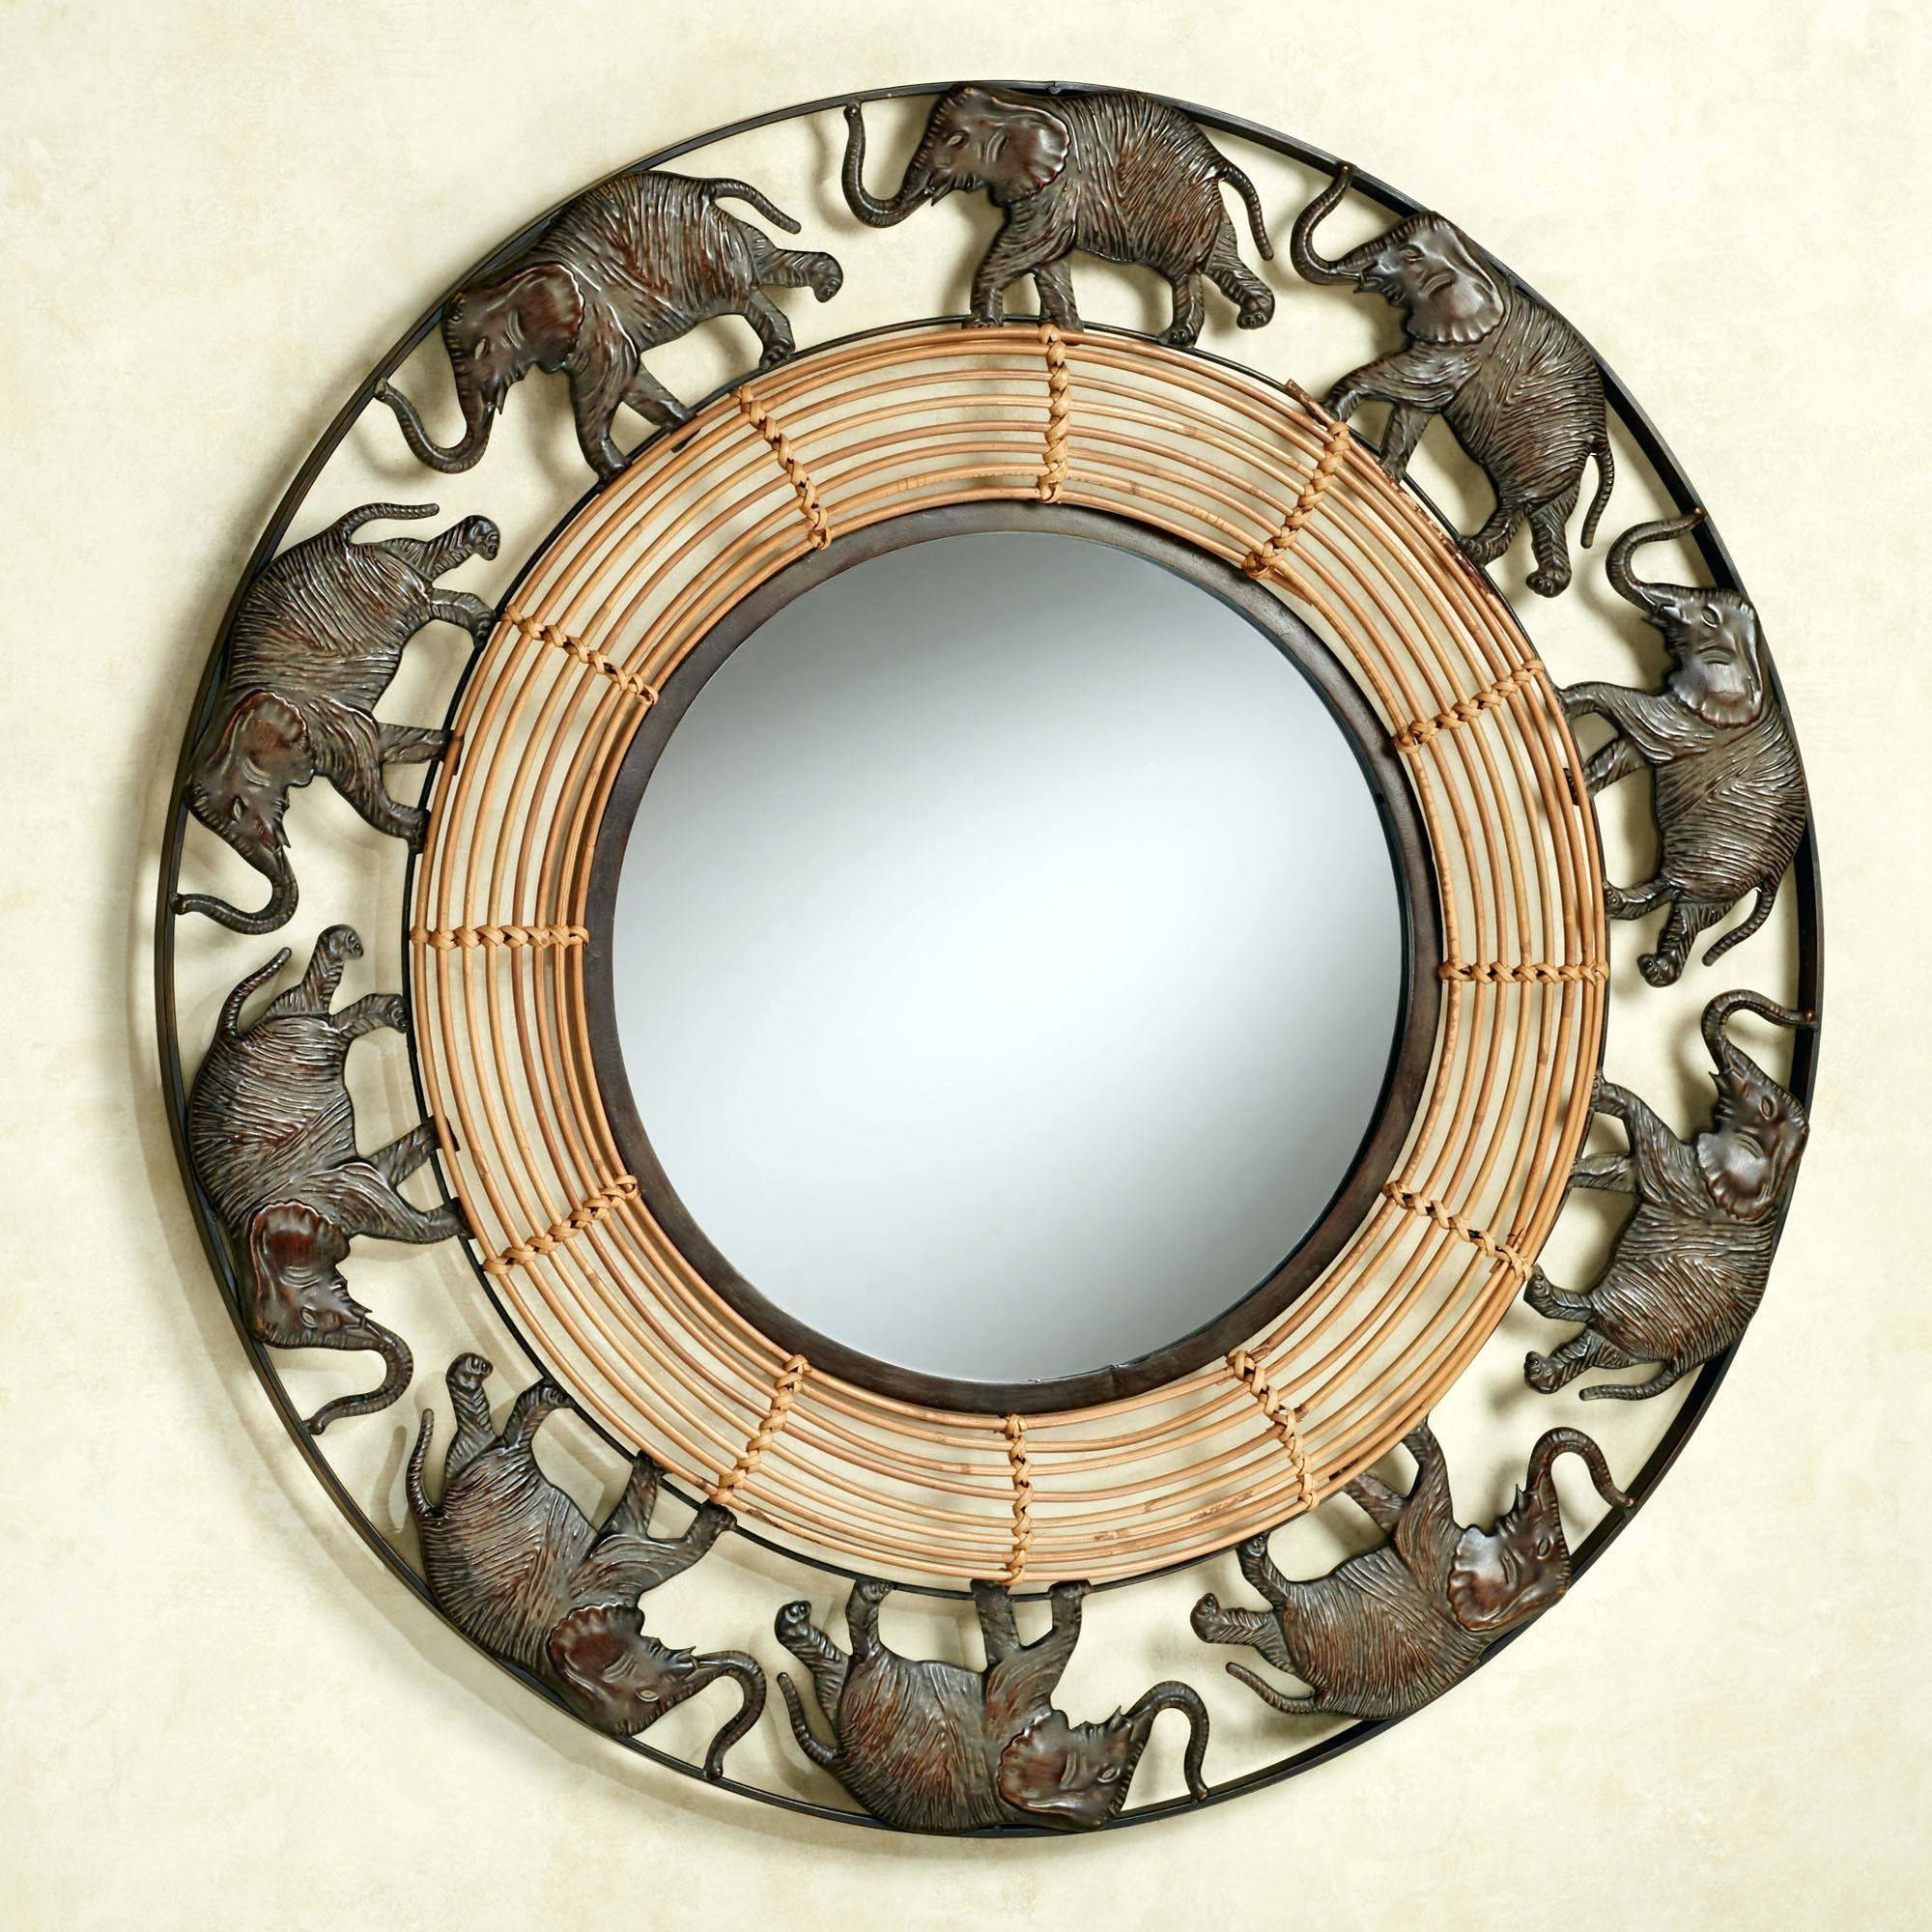 Wall Mirrors ~ Large Round Gold Wall Mirror Abstract Twilight Wall inside Large Round Metal Mirrors (Image 15 of 15)